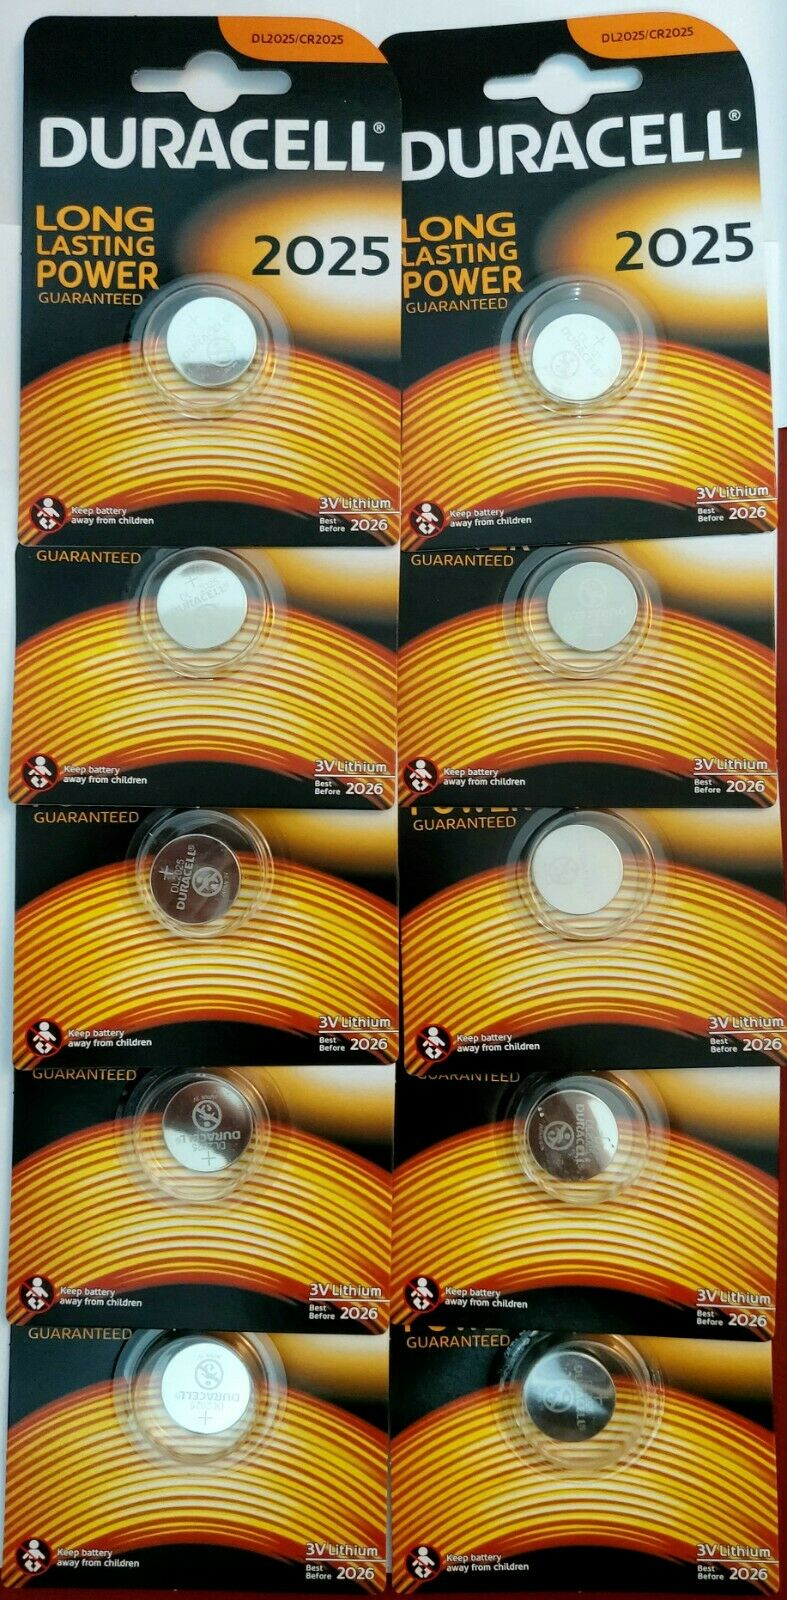 wholesale 100 x Duracell CR2025 3V Lithium Coin Cell Battery 2025 DL/BR2025